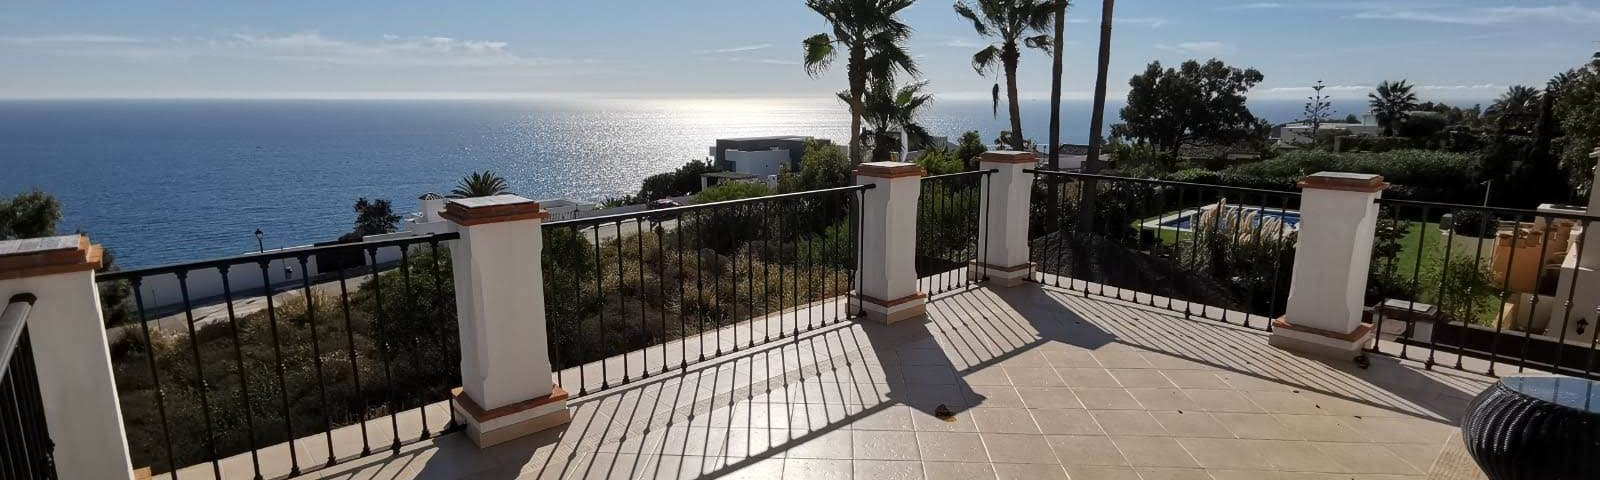 Sea view from a Manilva Property